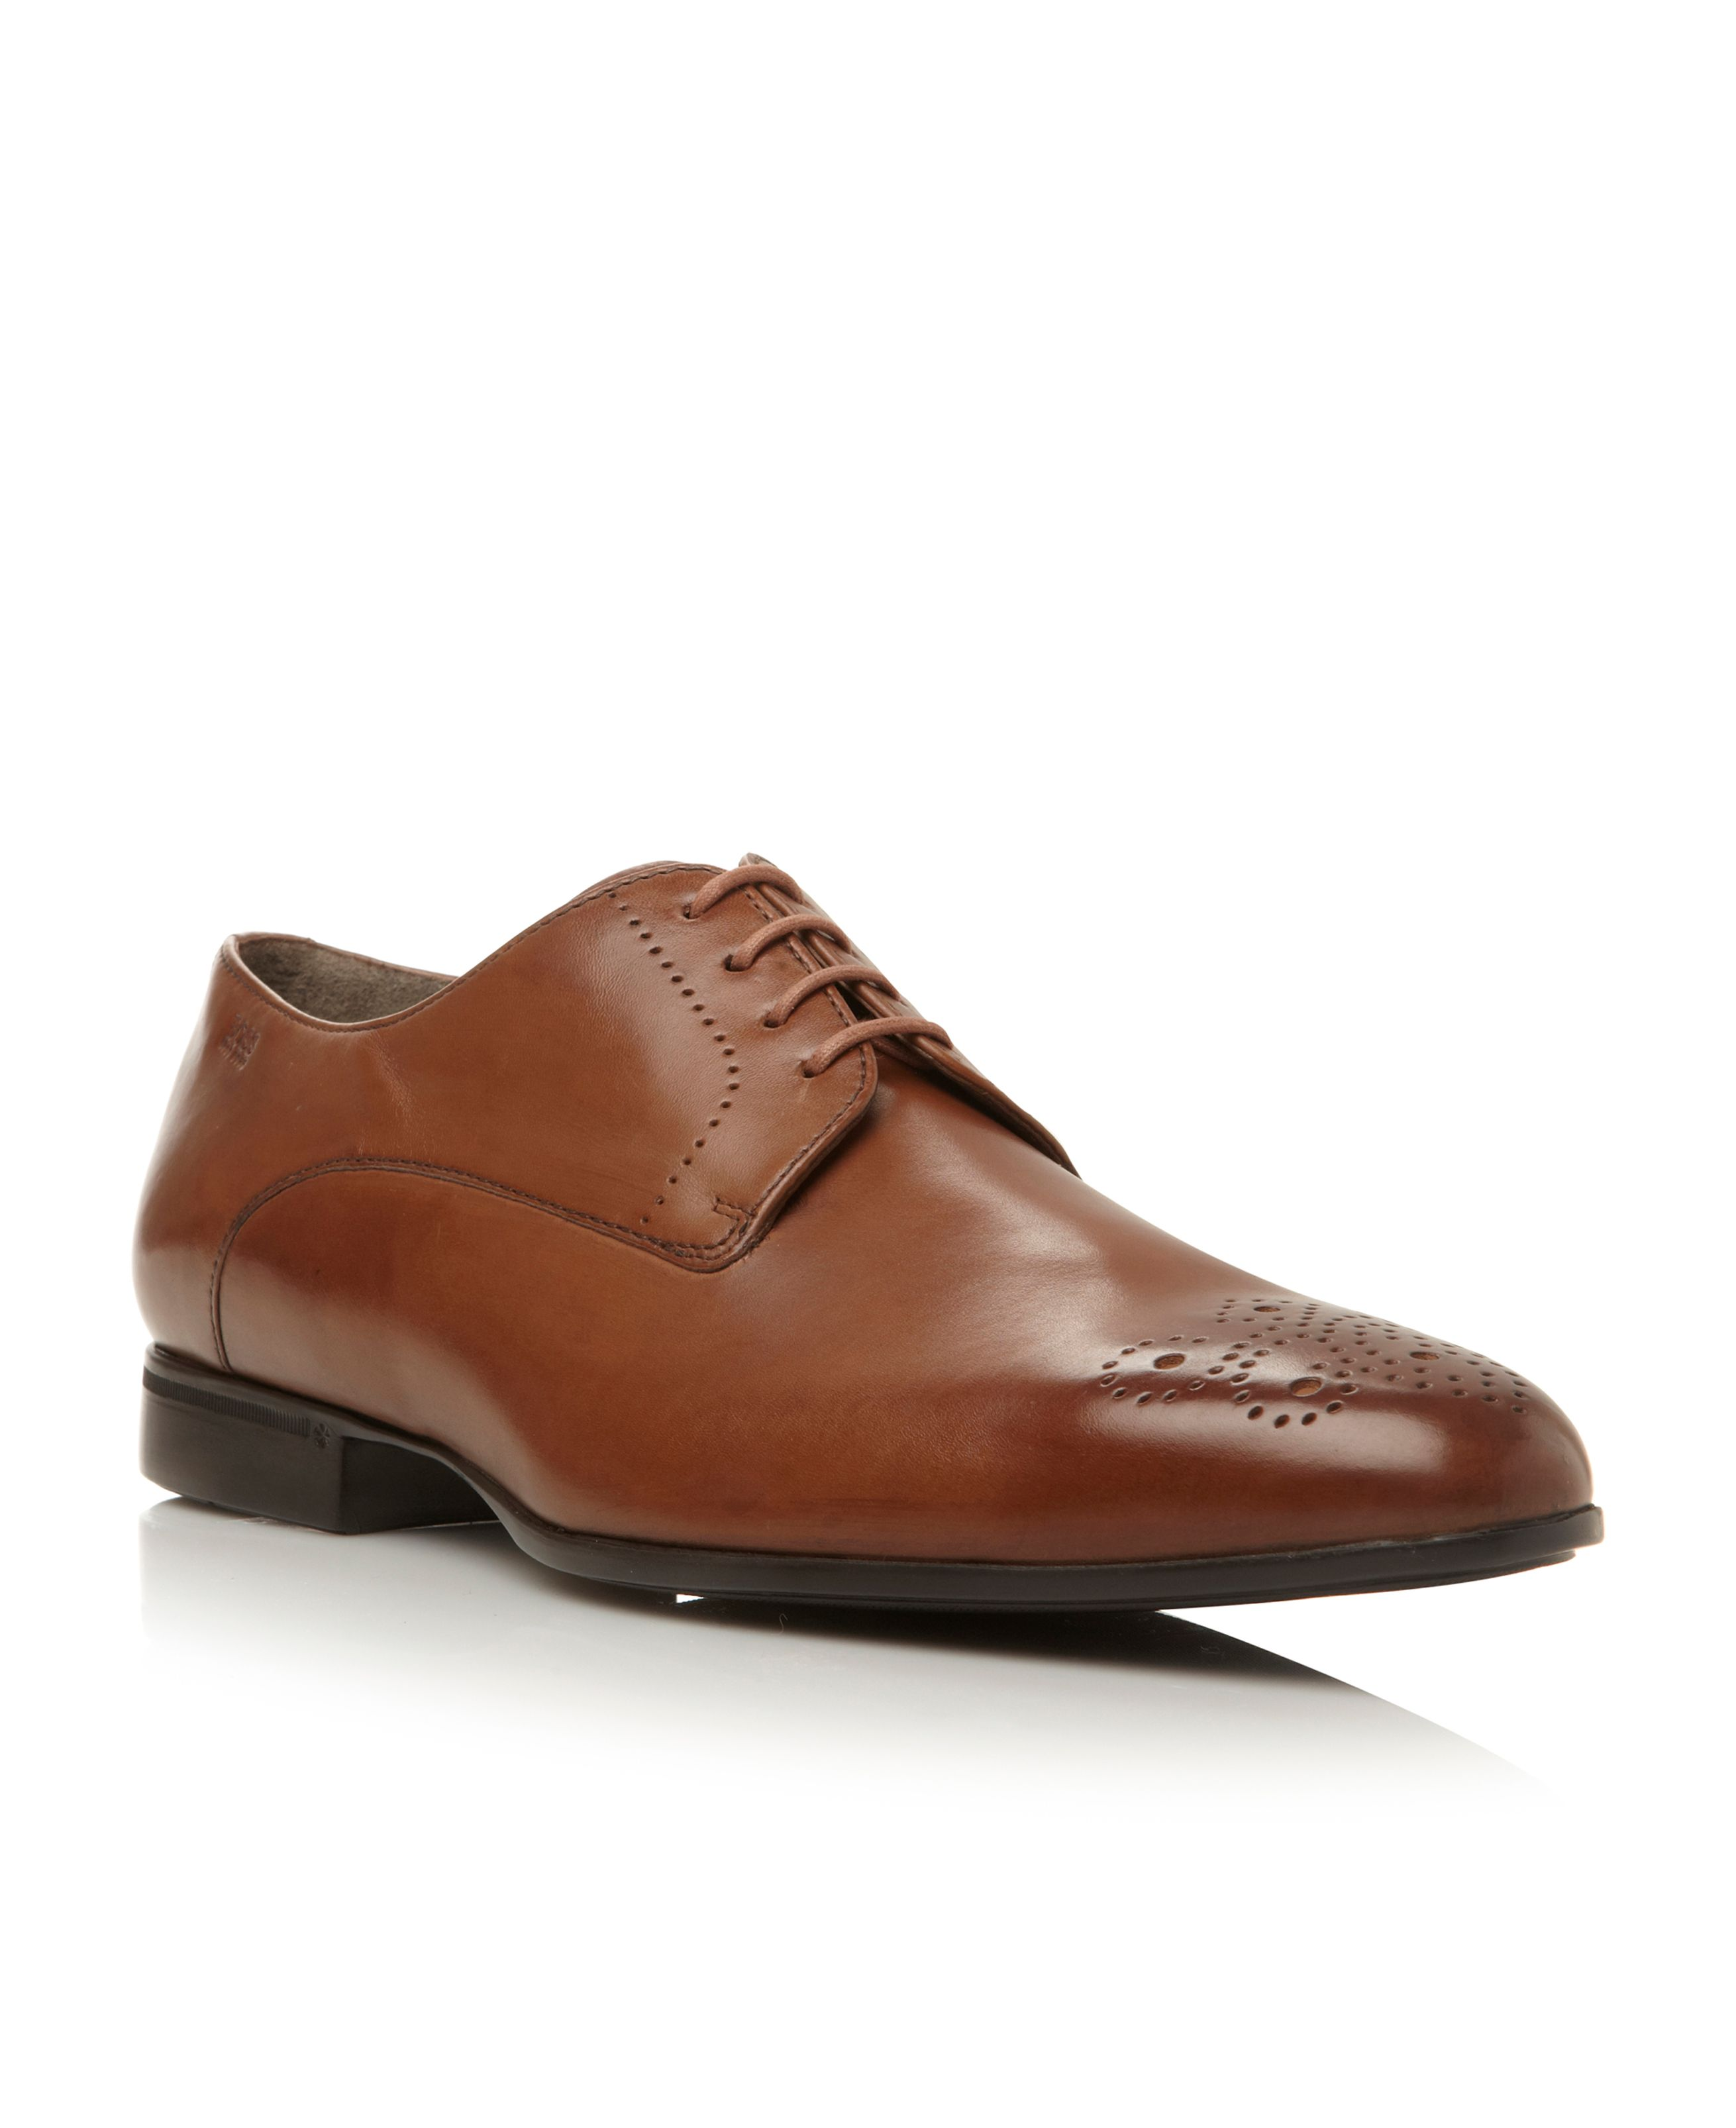 Neviss lace up brogue toe gibson shoes